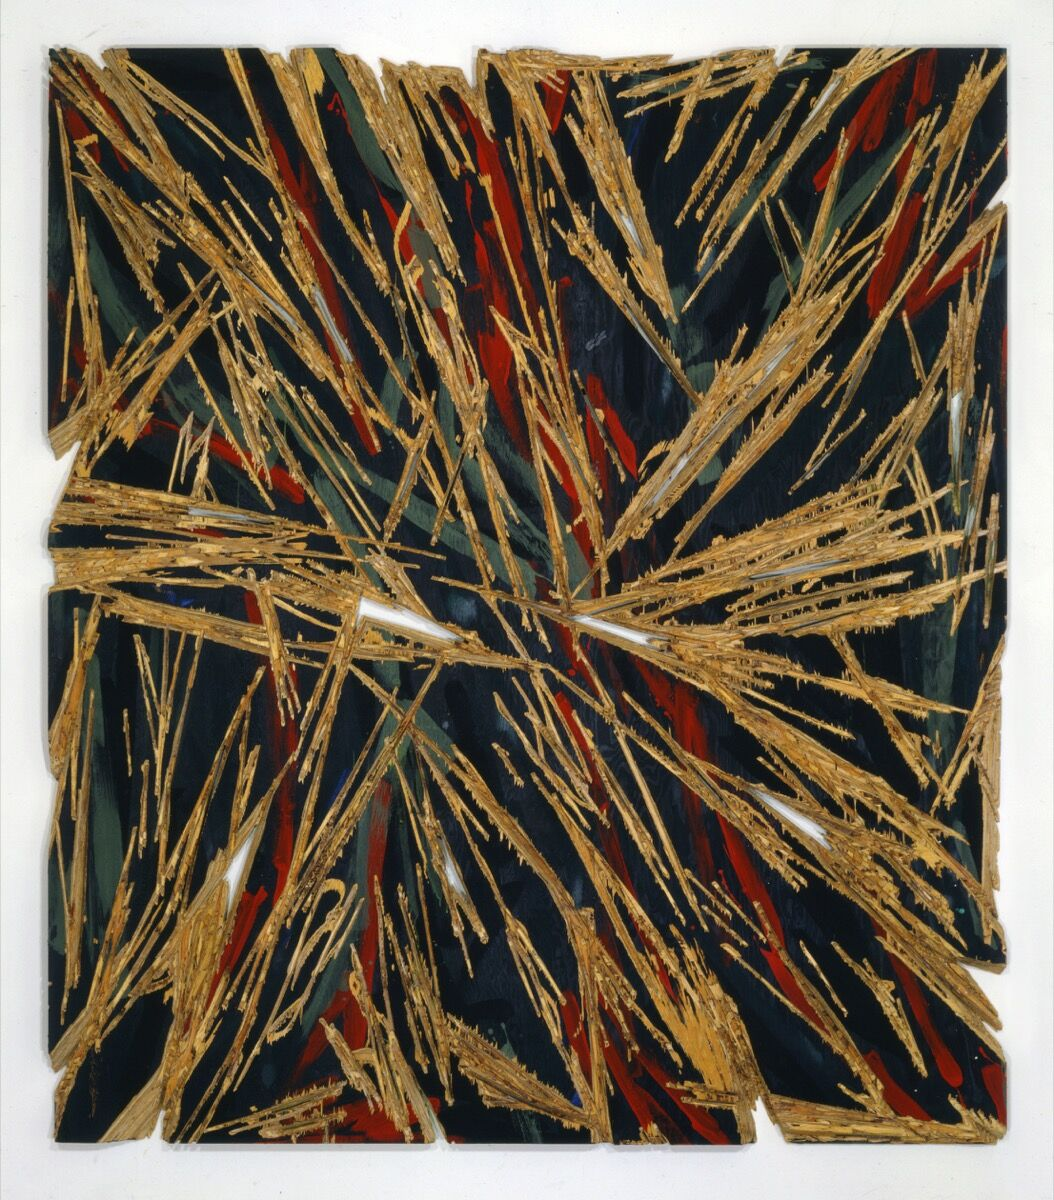 Charles Arnoldi, For Beauty Passed Away, 1982. Courtesy of the artist.